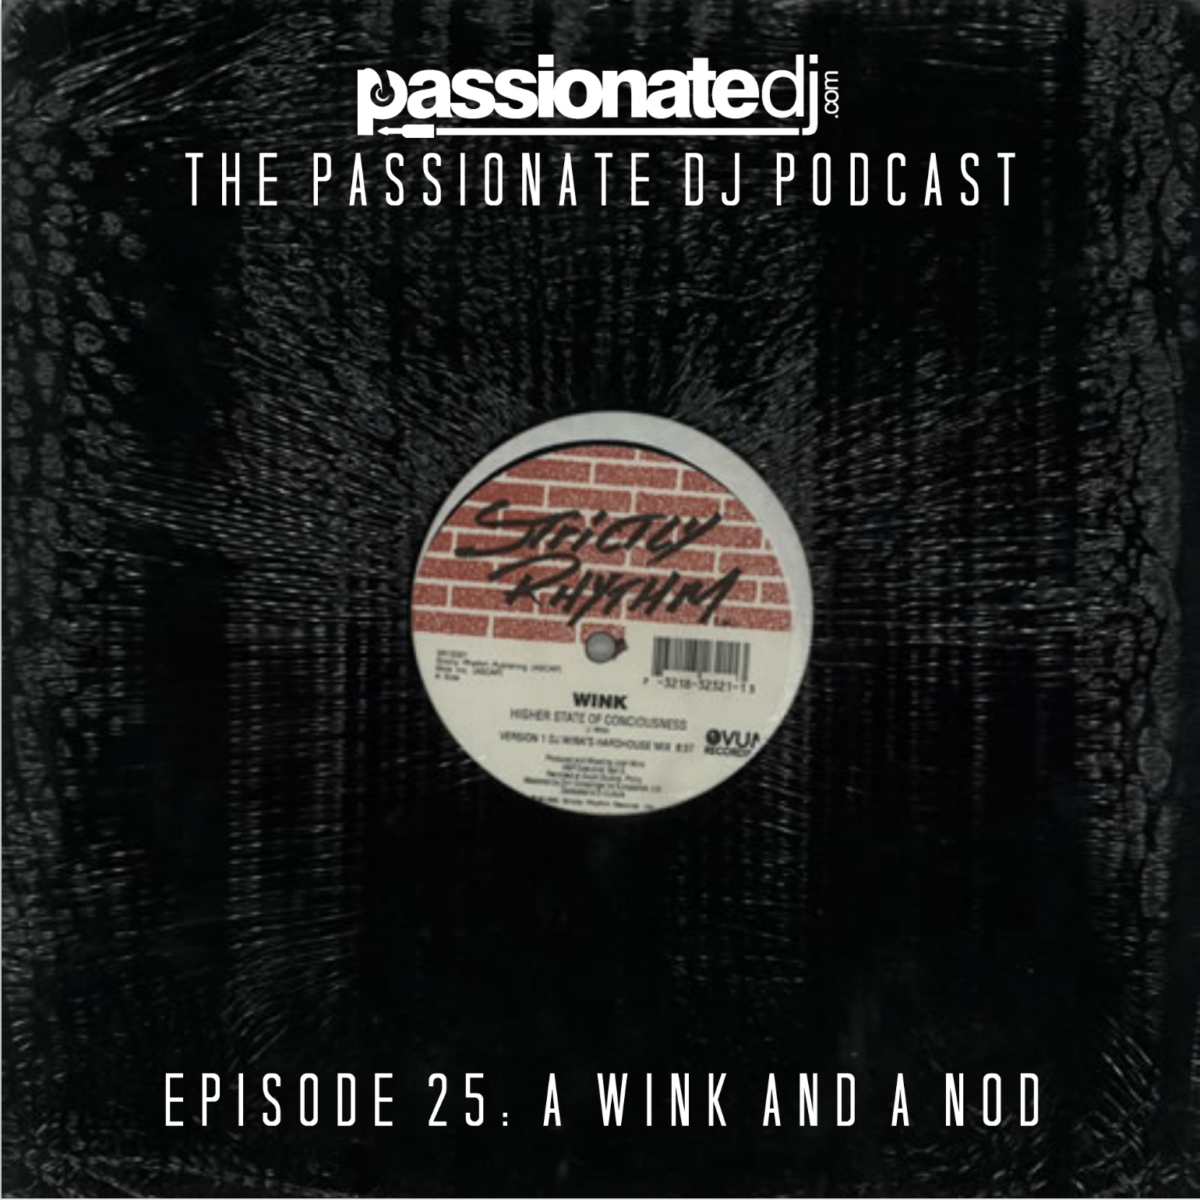 A Wink and a Nod (Passionate DJ Podcast #025)